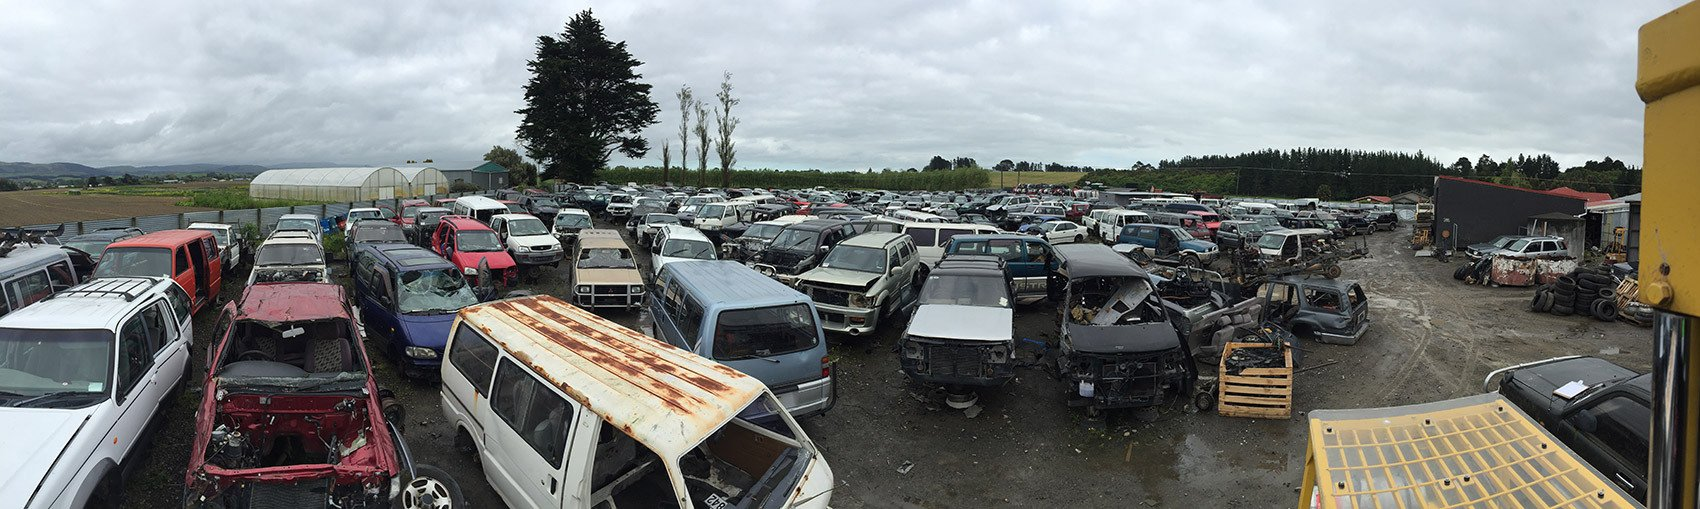 Used cars parked for selling